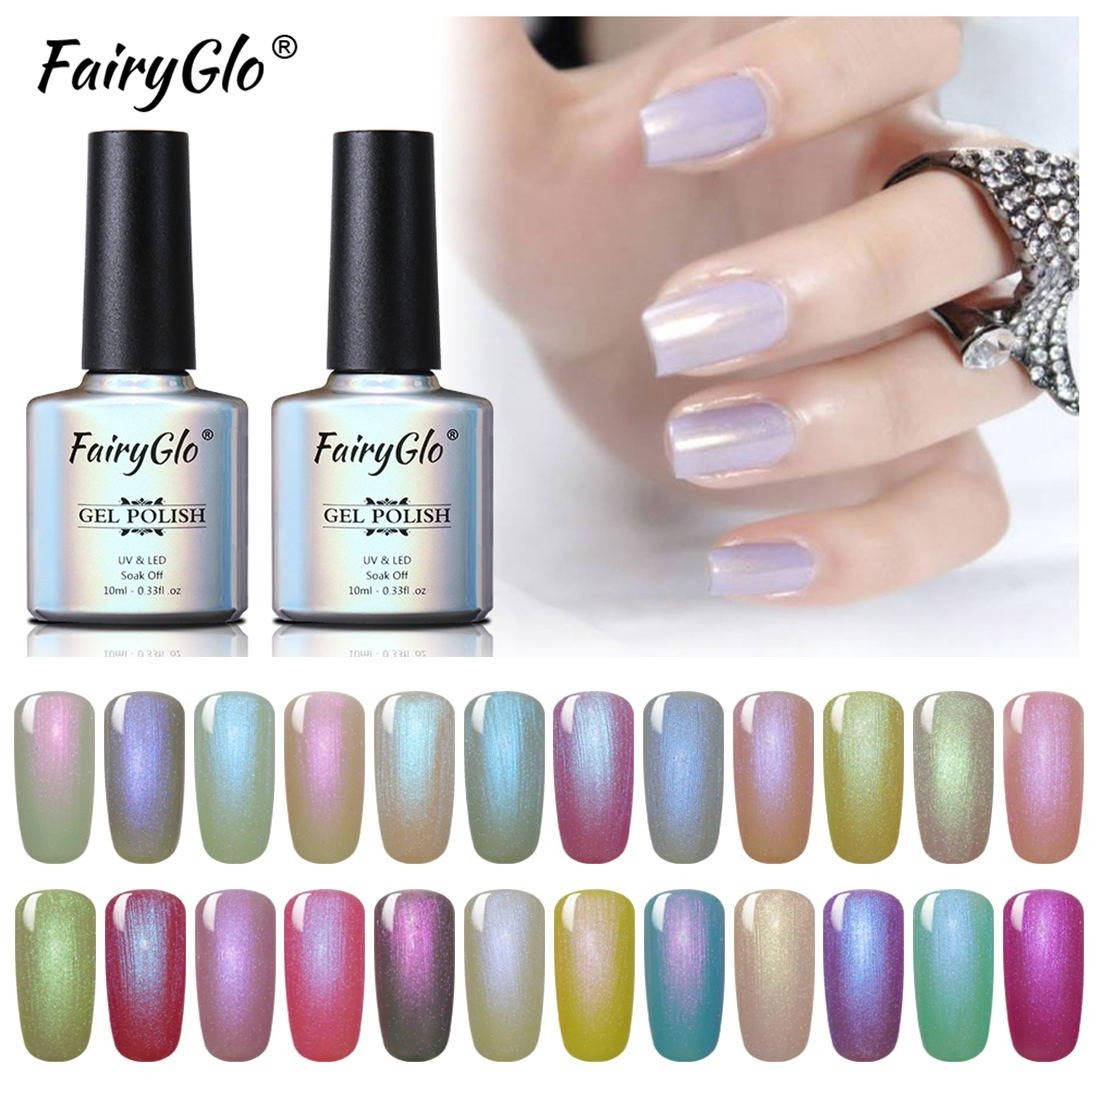 5PCS Gel Nail Polish Pearl Varnish Manicure Salon Decor Nail Art Elegant Shell Shiny Under Light UV LED Soak Off Gift Set FairyGlo 10ml 001